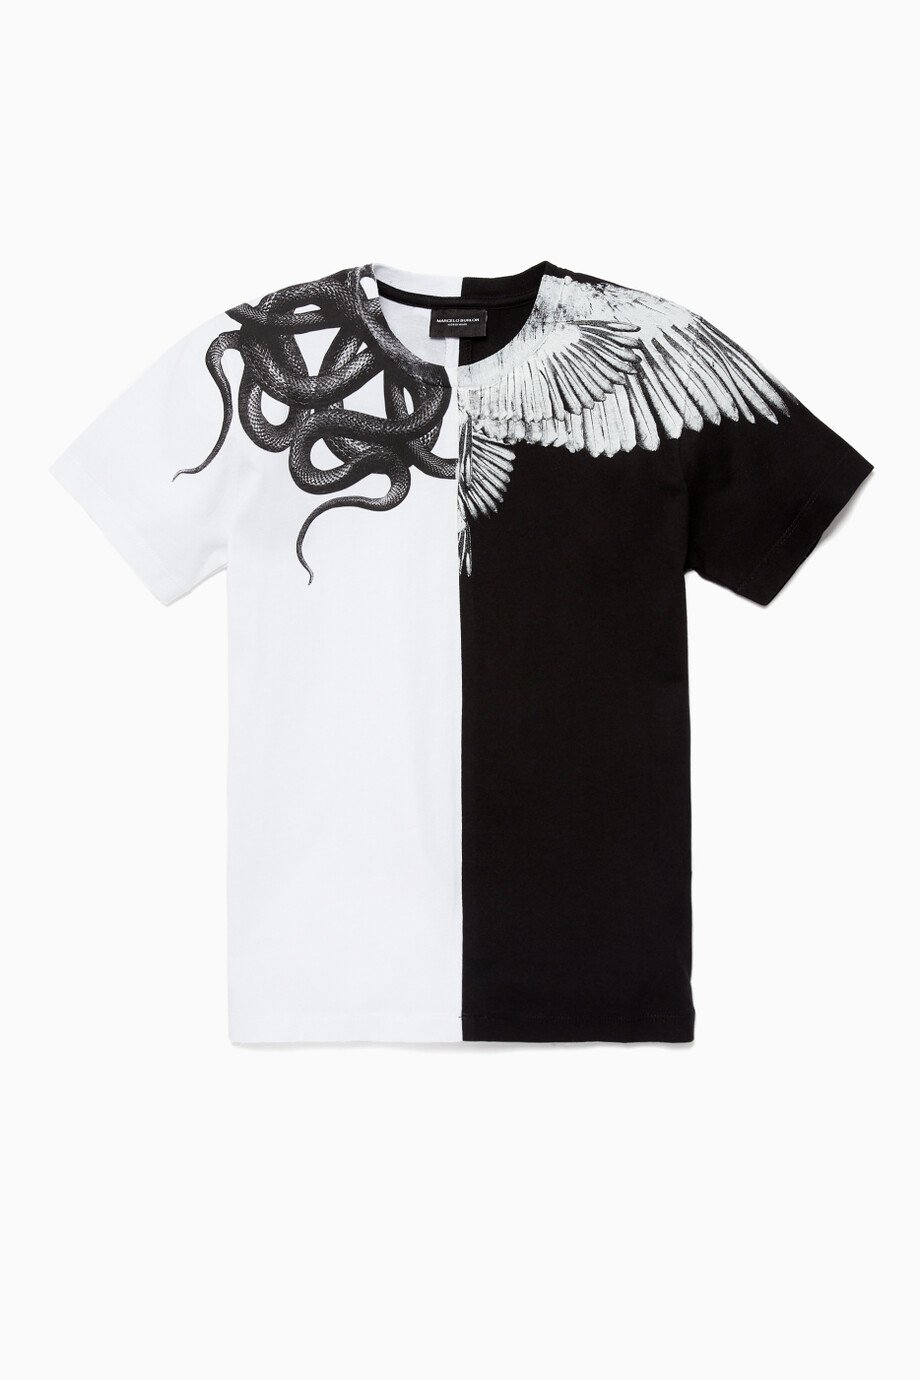 acb5bf8d Shop Marcelo Burlon Multicolour Black & White Wings and Snakes ...